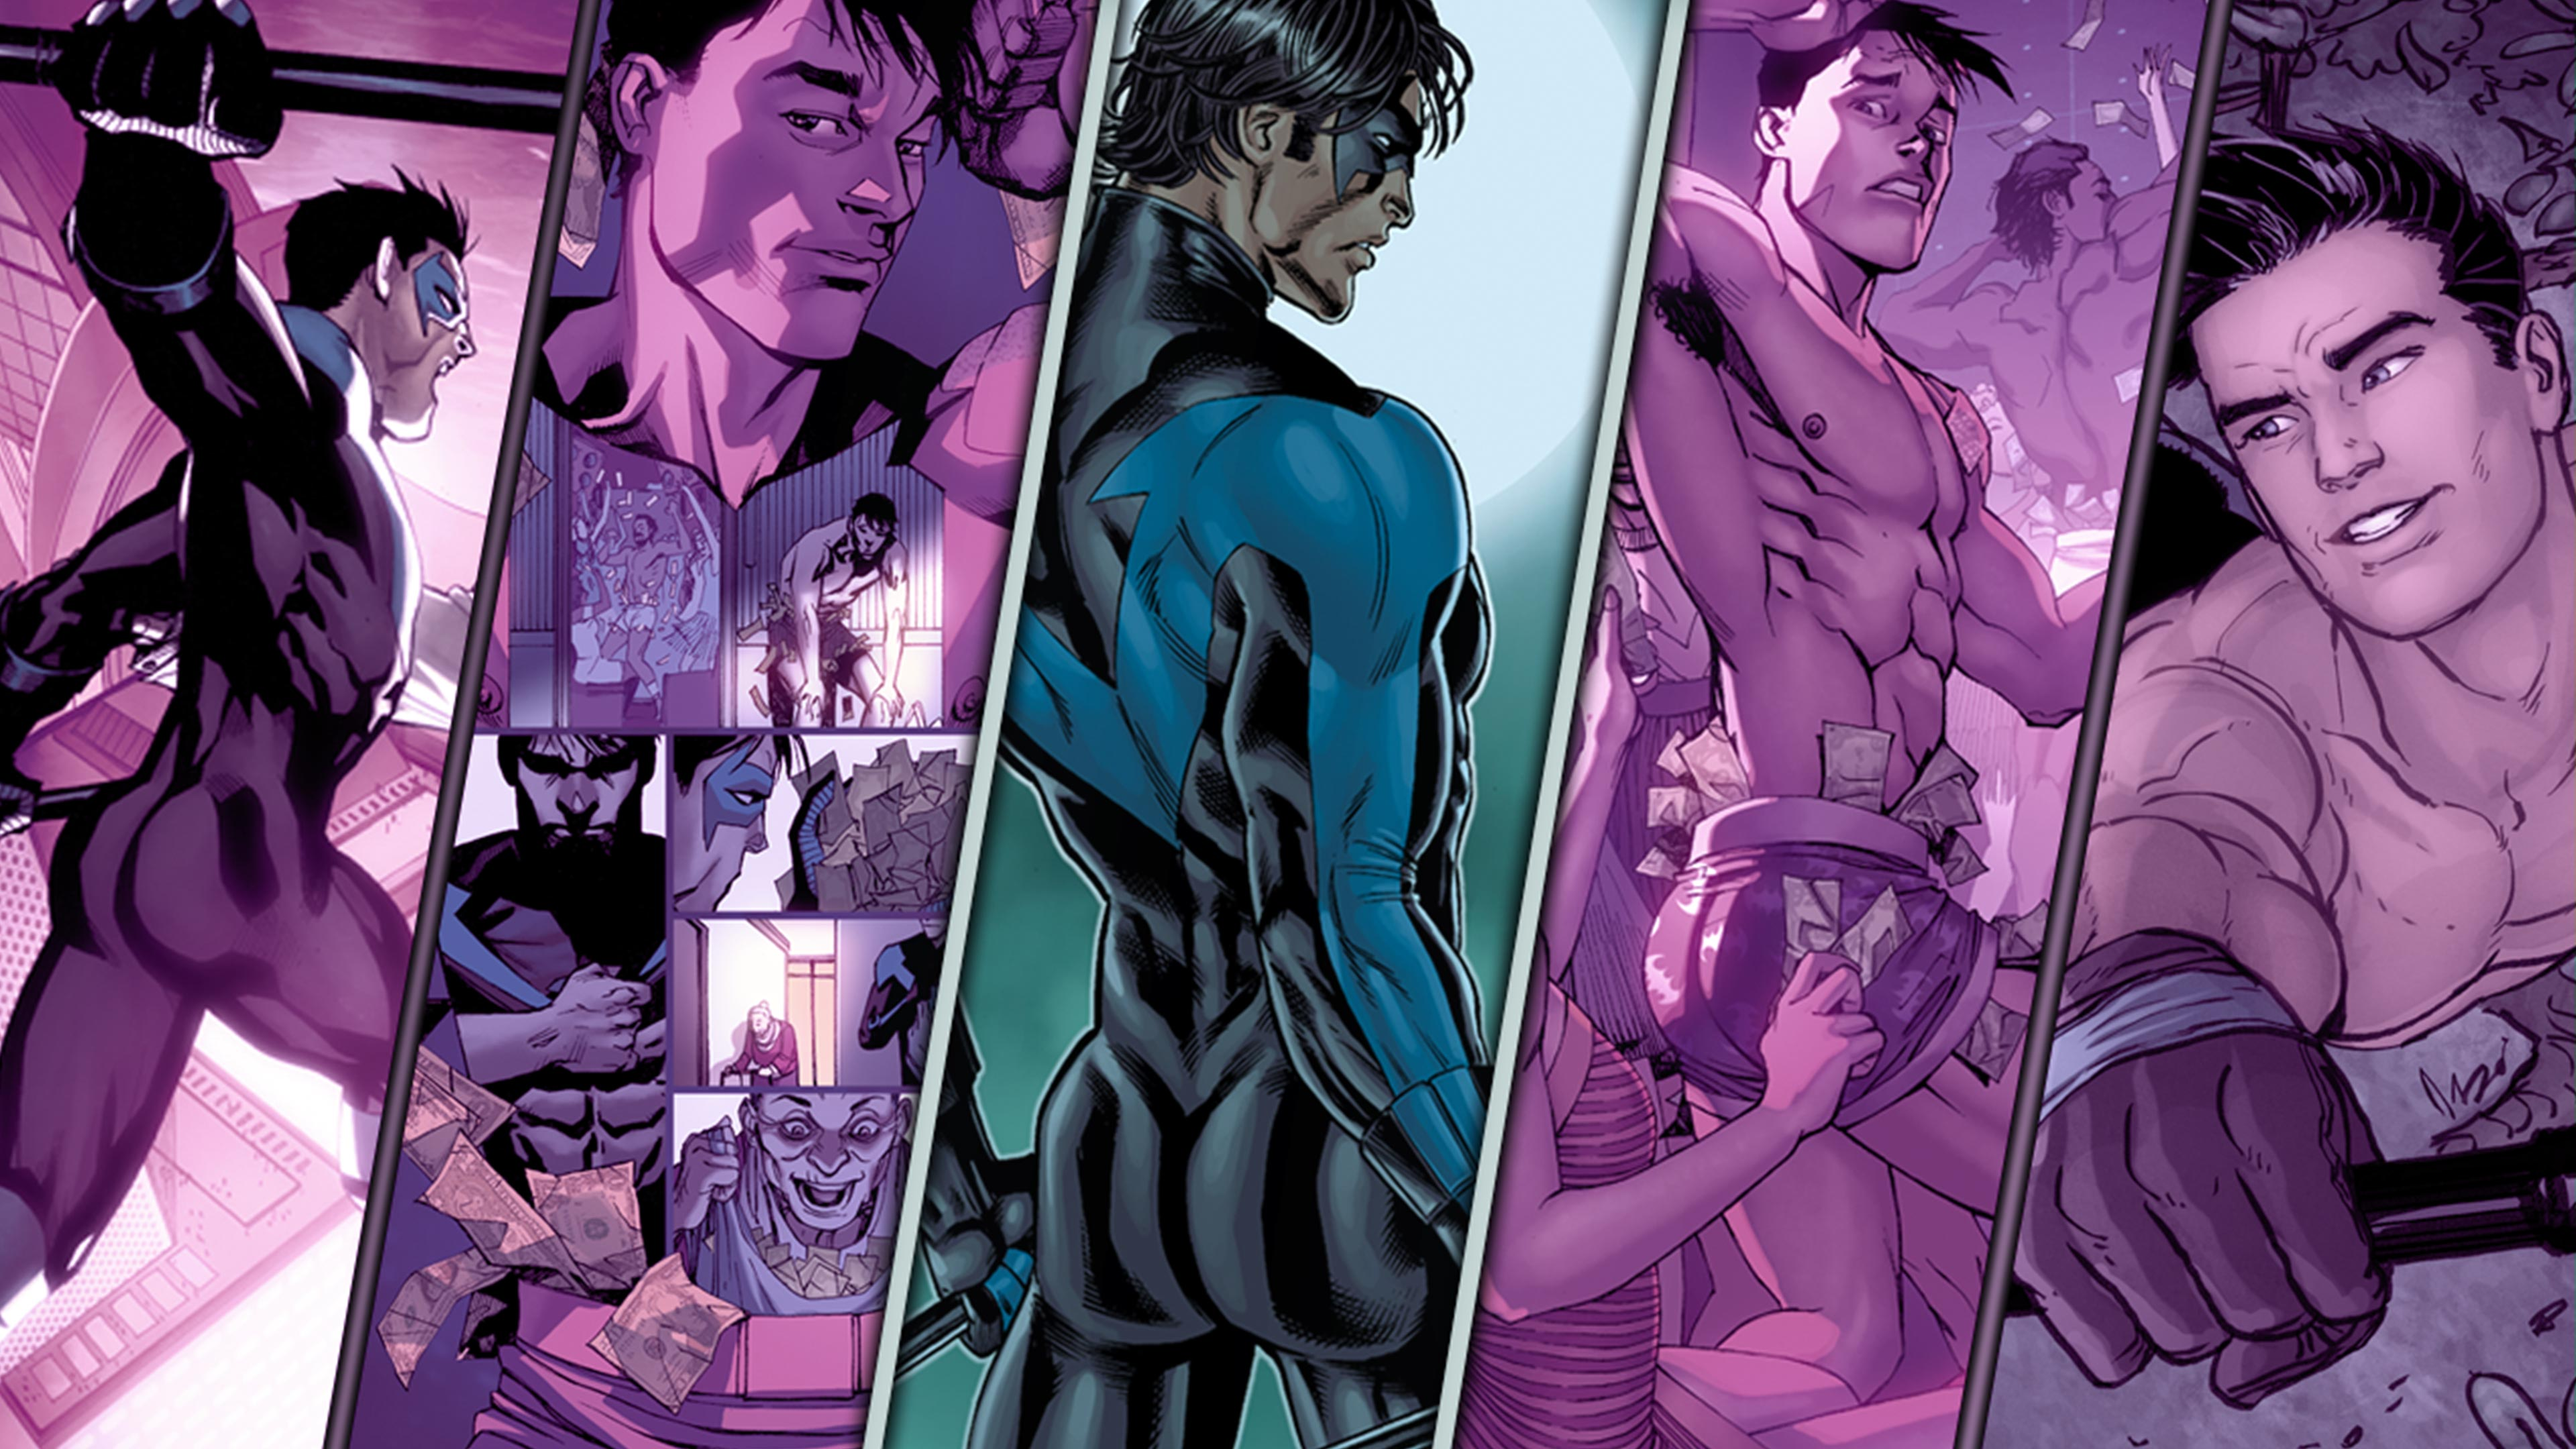 whendidnightwinggetsohot-news-hero-190919-v1.jpg